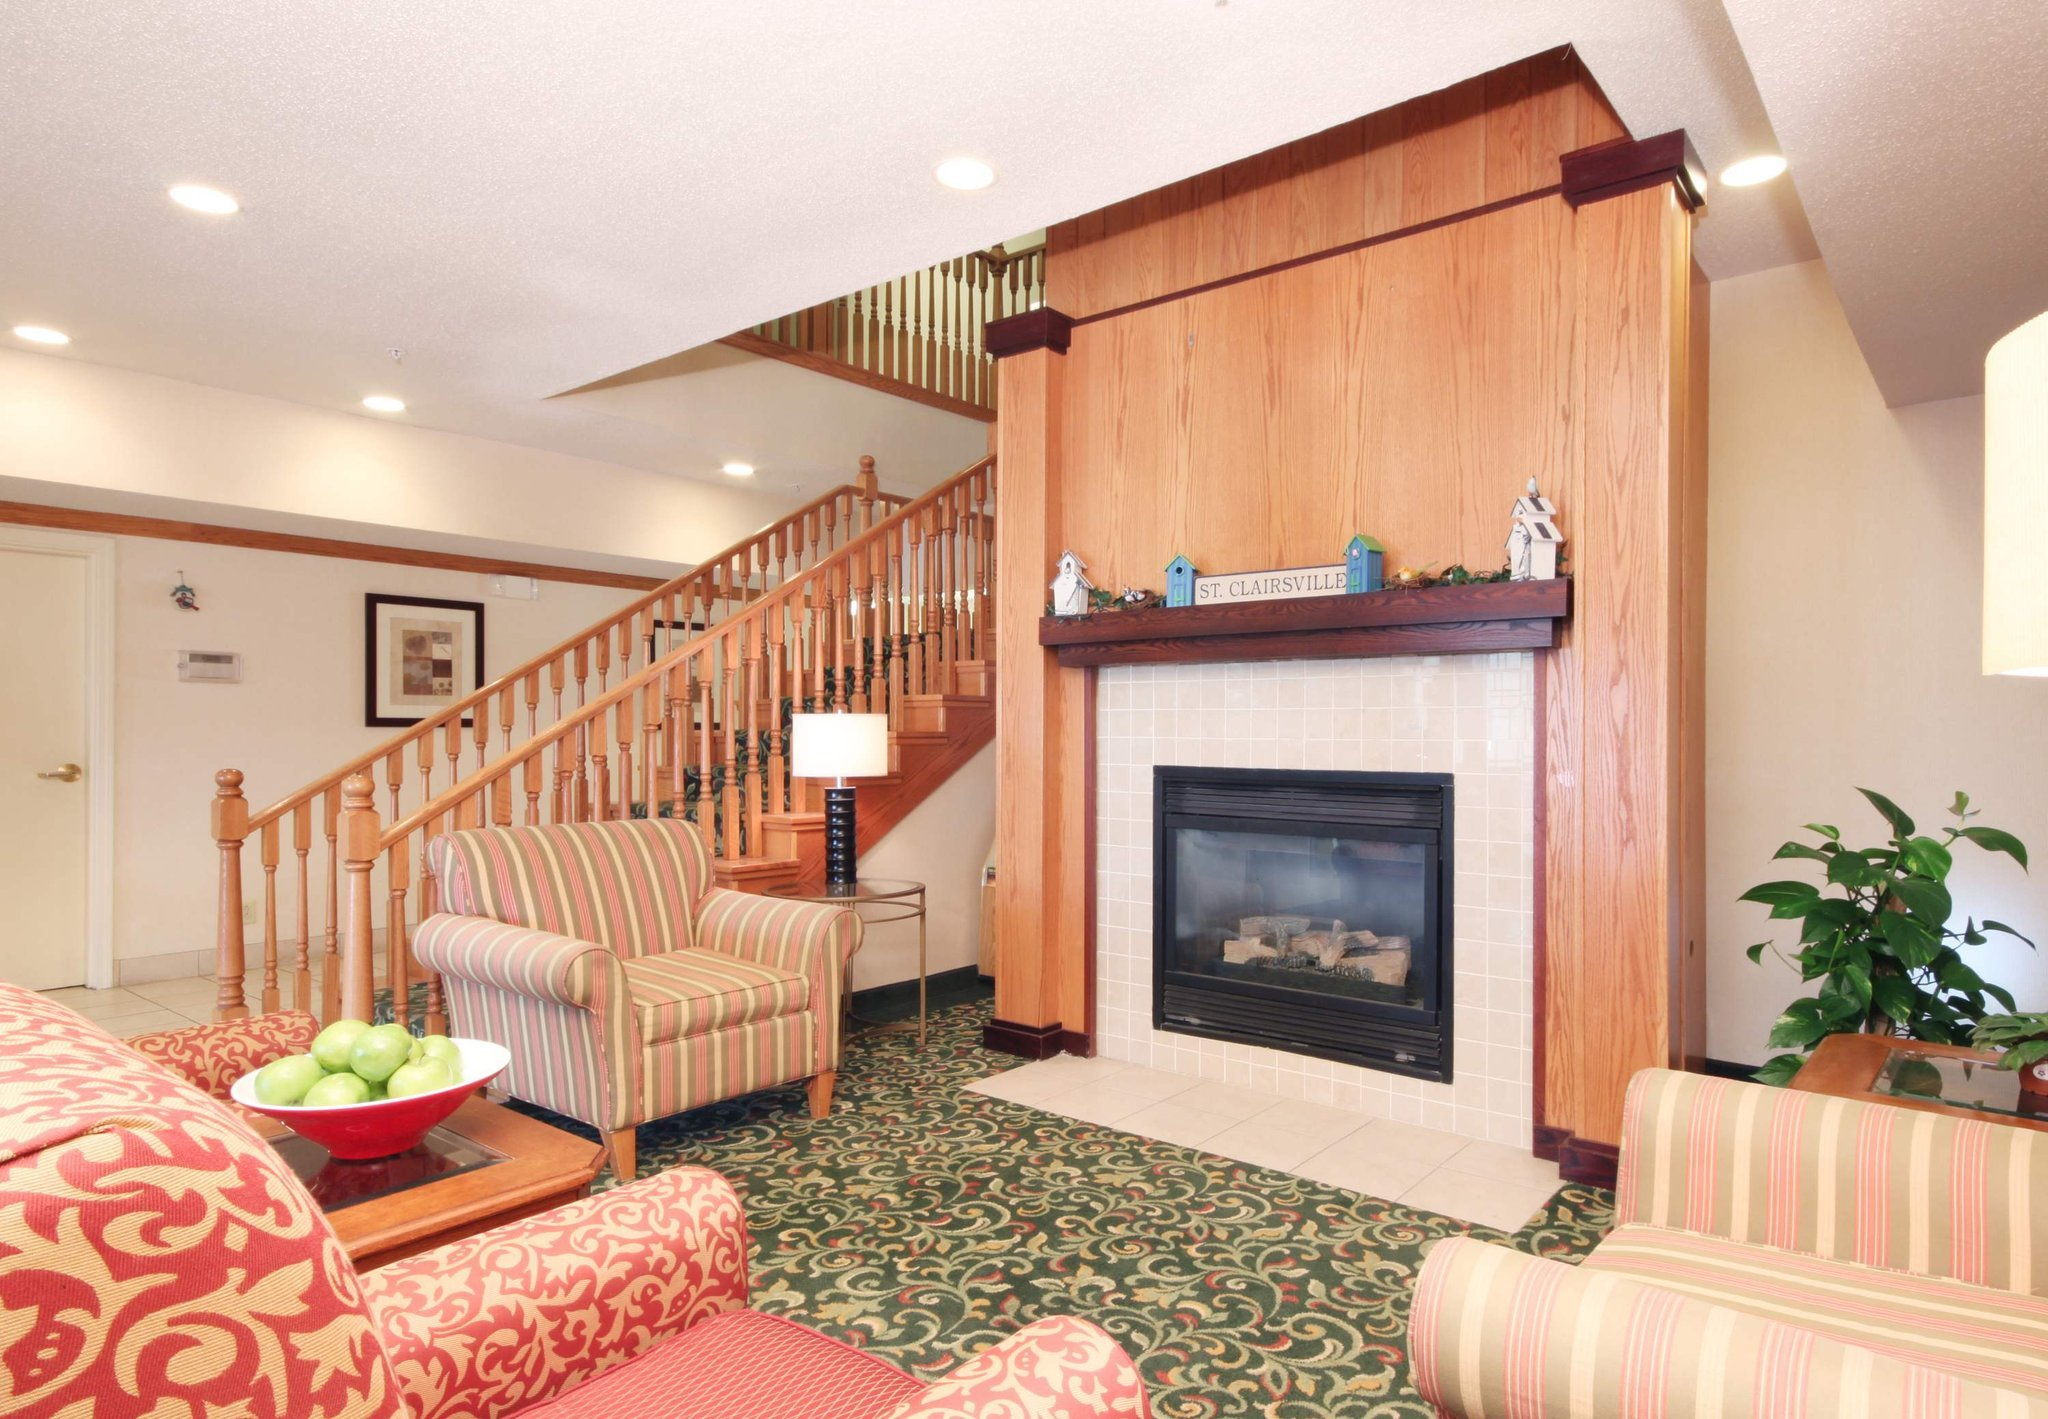 Fairfield Inn & Suites Wheeling-St. Clairsville, OH